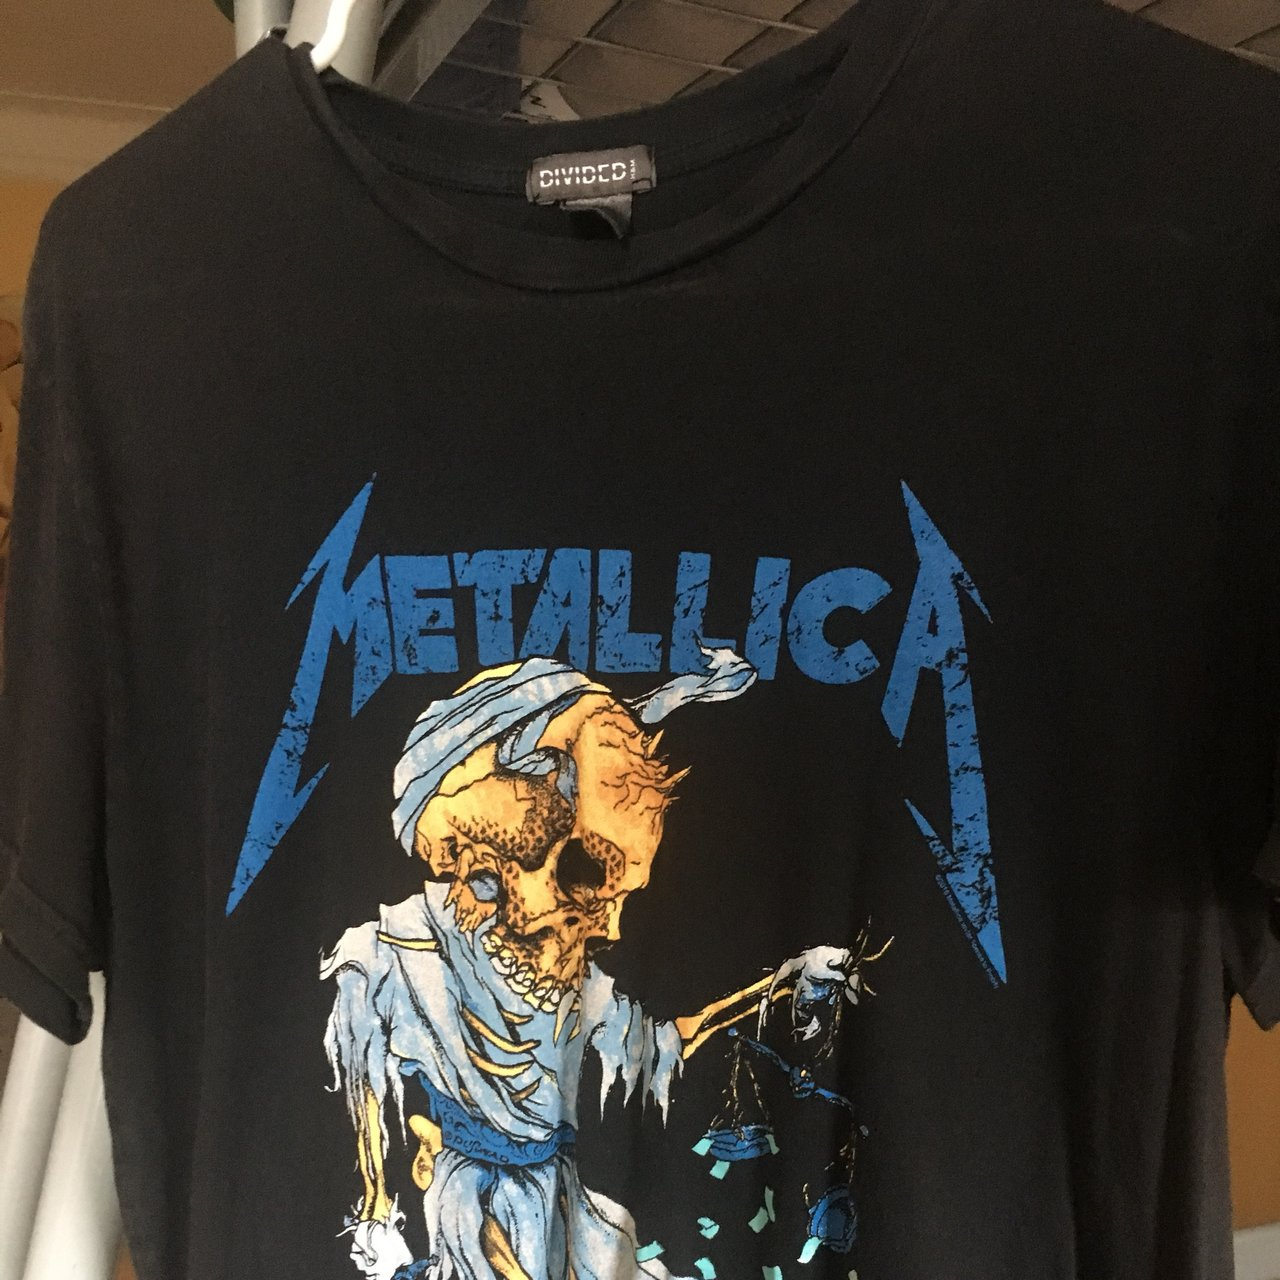 H Just Too Metallica T At amp;m ShirtNo Flaws For Depop Divided All tCrxQhsd